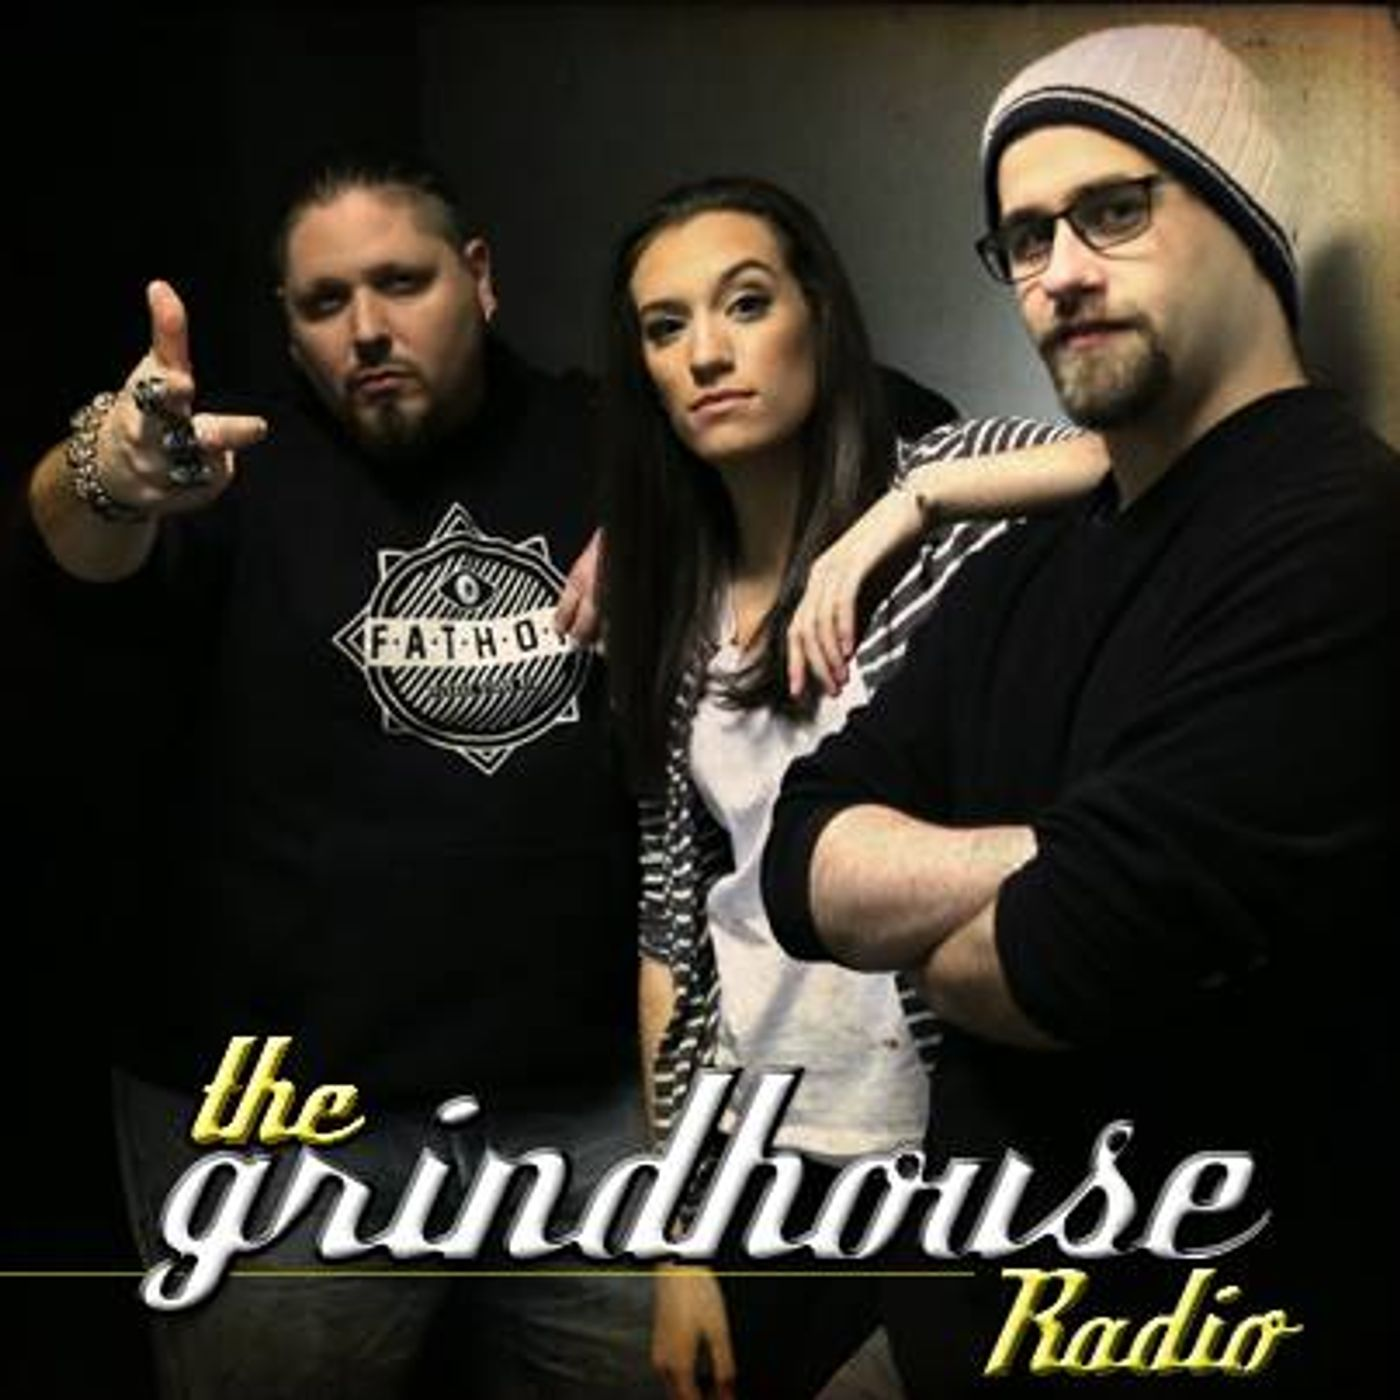 The Grindhouse Radio